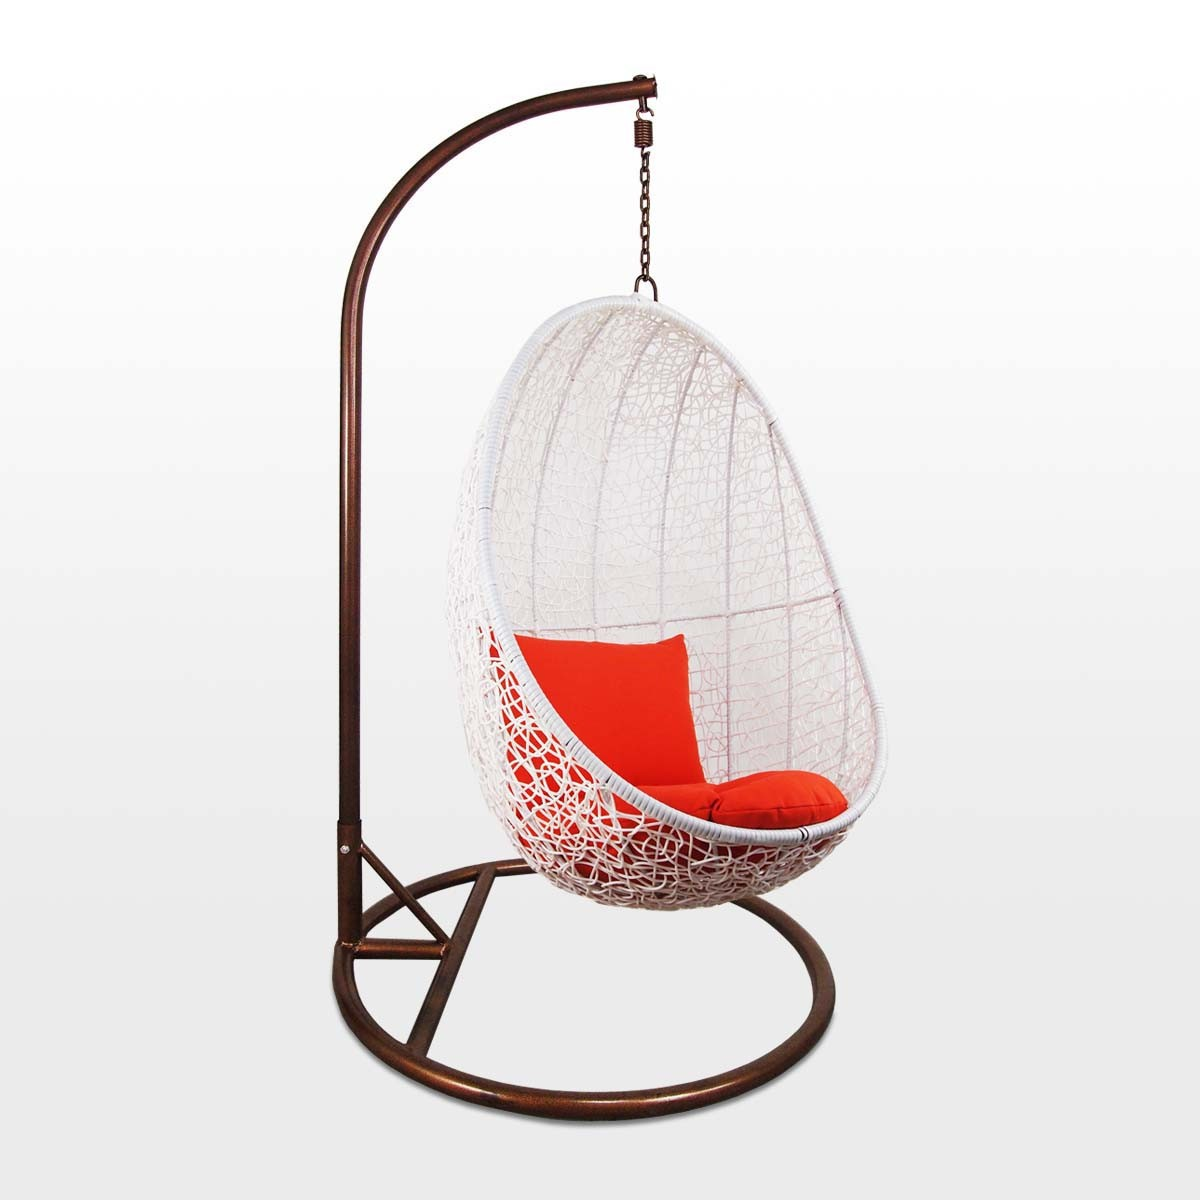 Cocoon Chair White Cocoon Swing Chair Orange Cushion Outdoor Garden